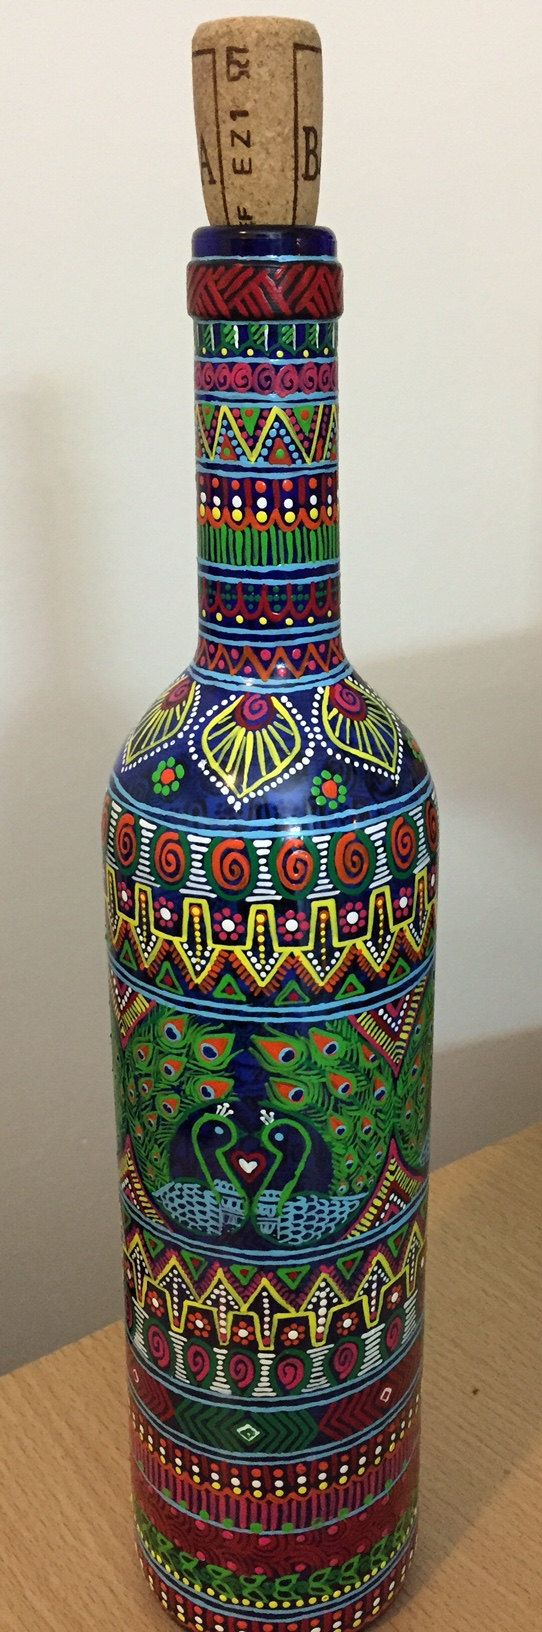 2490 best art class ideas images on pinterest for What paint do you use to paint wine glasses